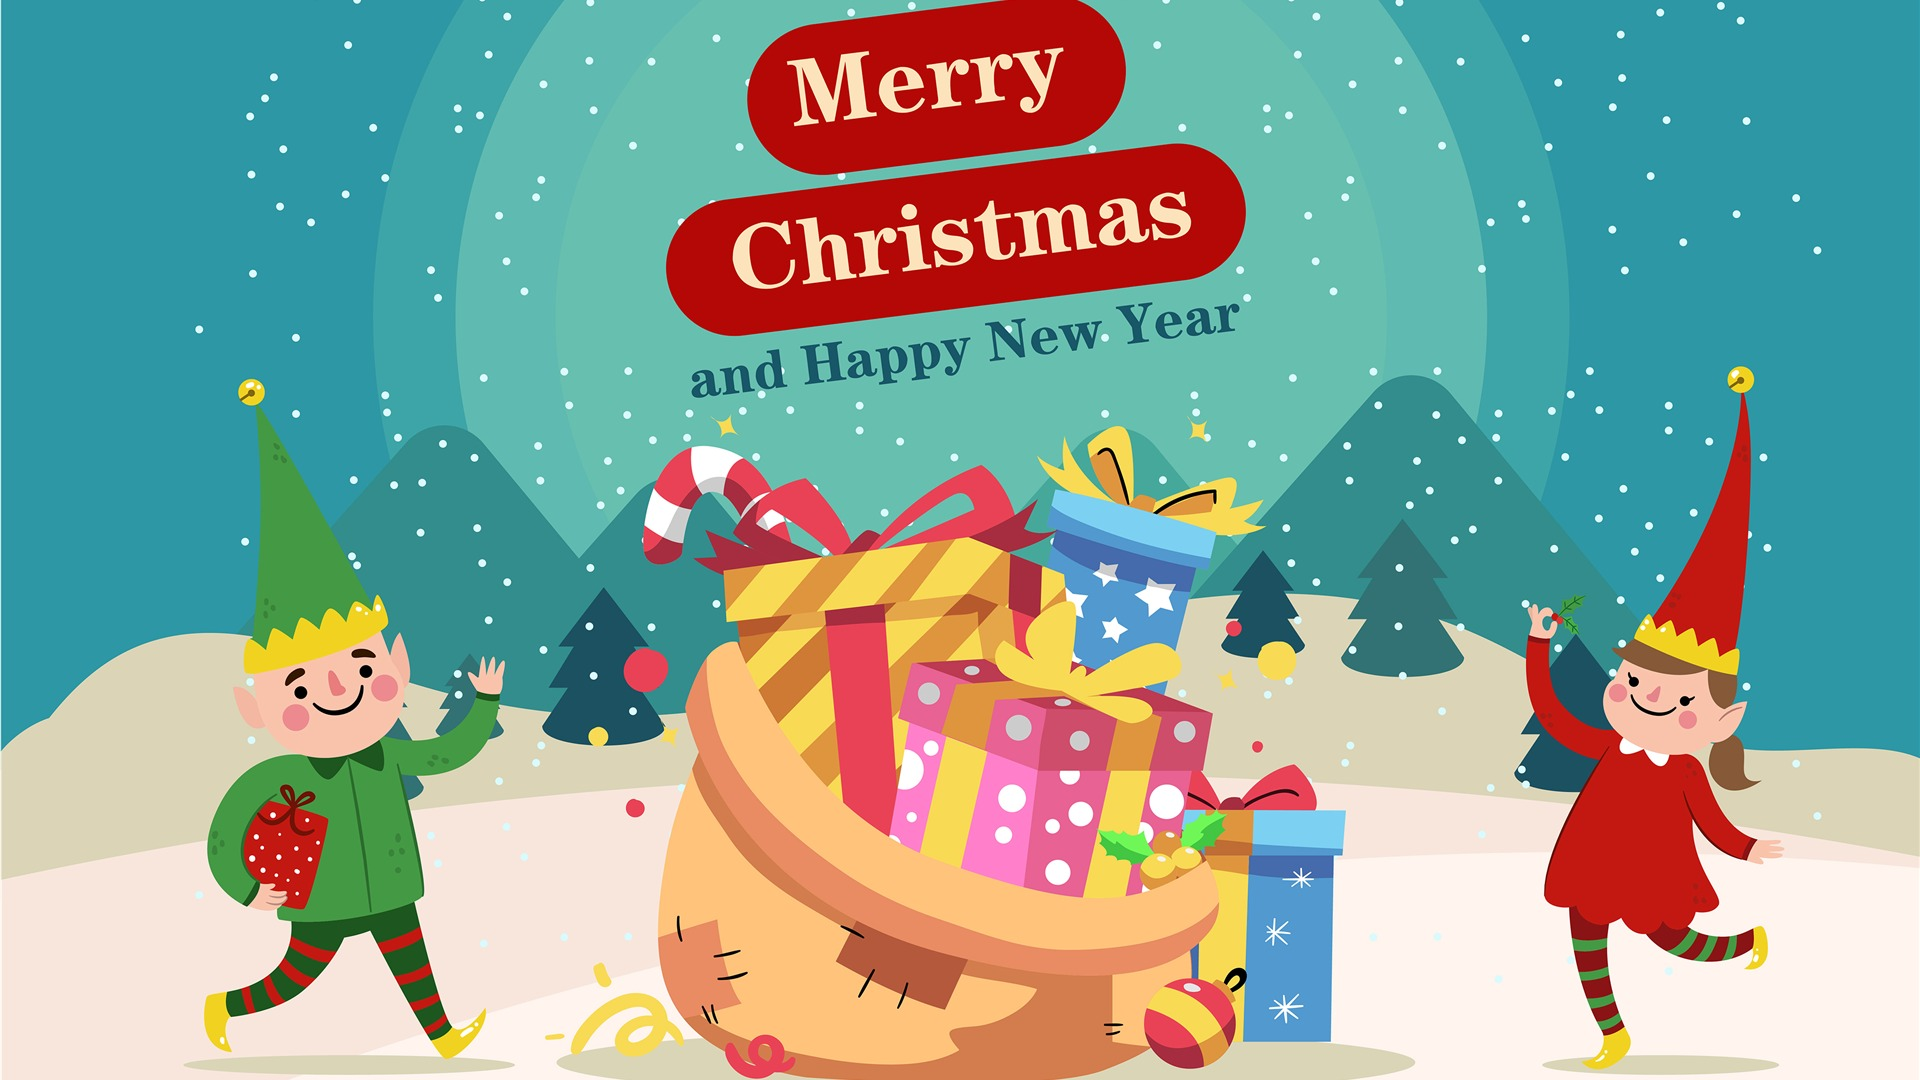 Happy New Year Merry Christmas Holiday Gift Wallpaper 1920x1080